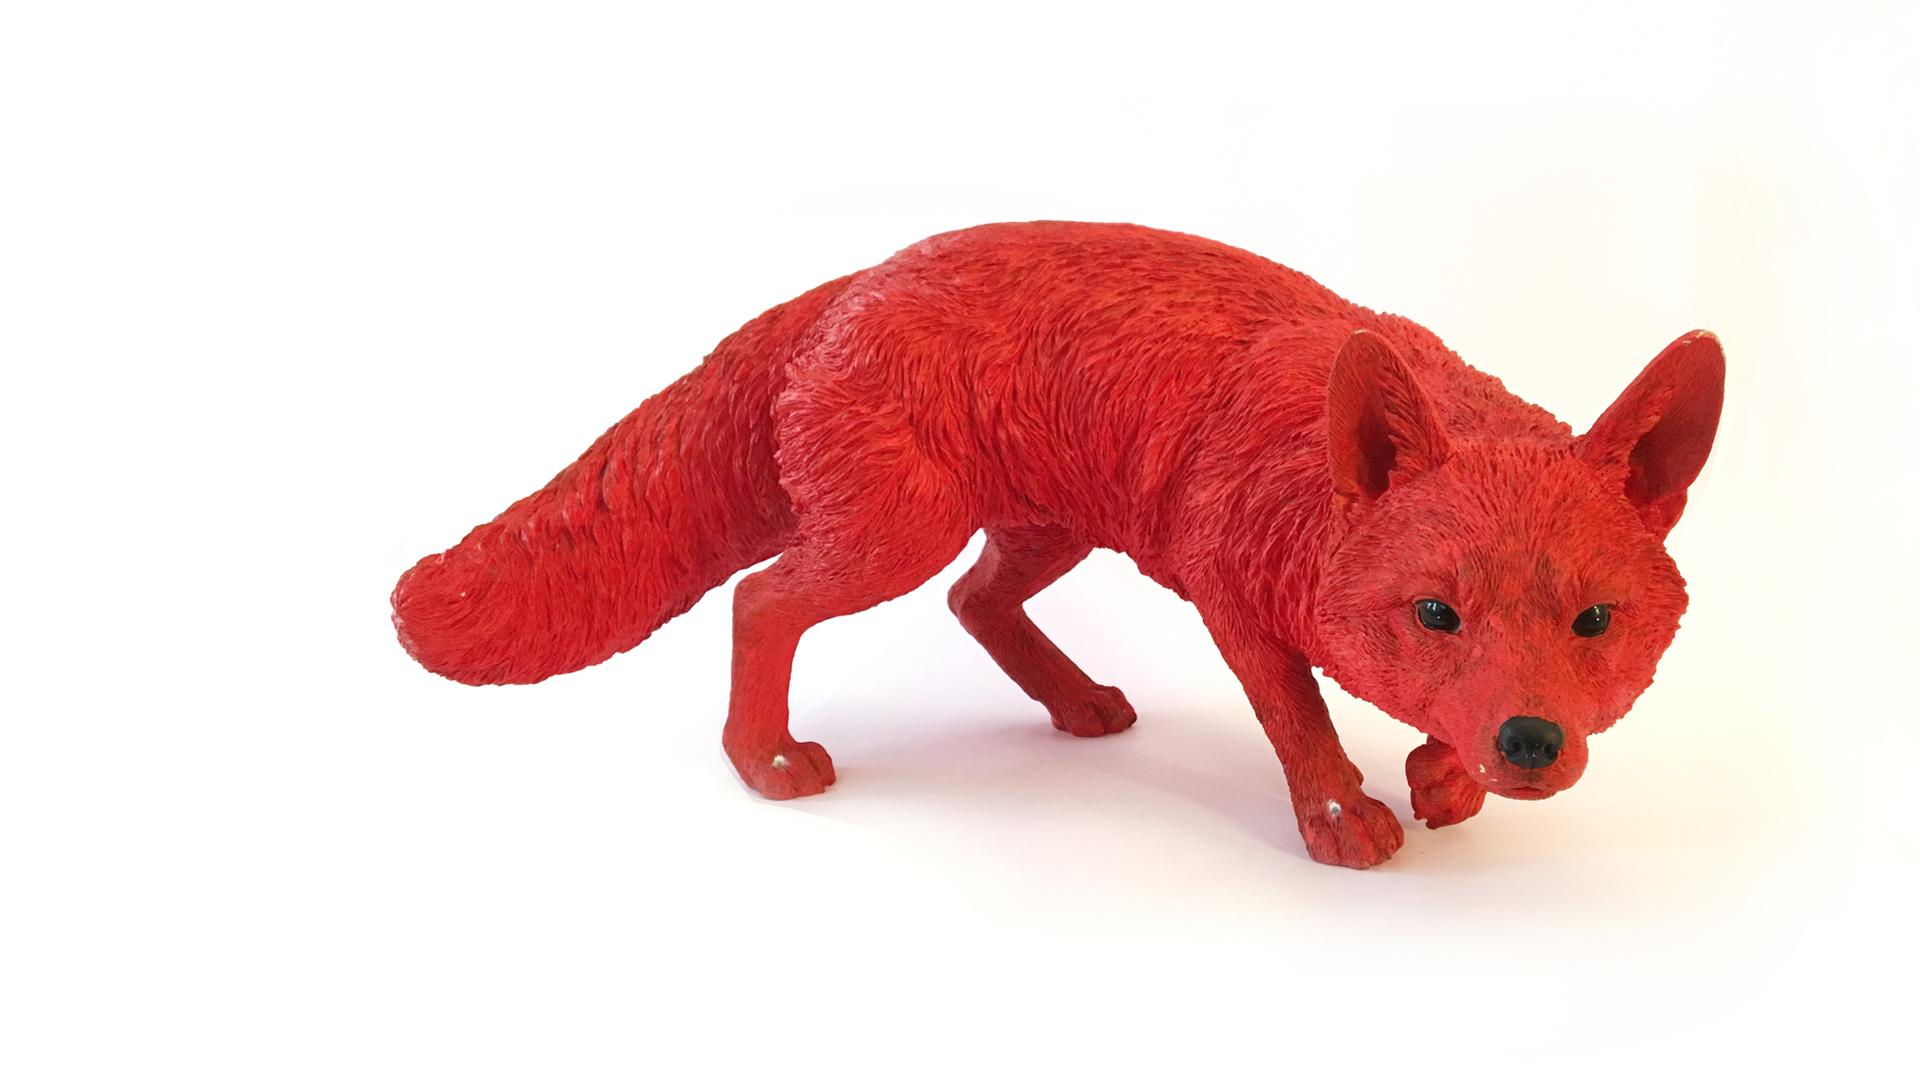 Real Life Prowling Fox - Celebrity Big Brother 2017